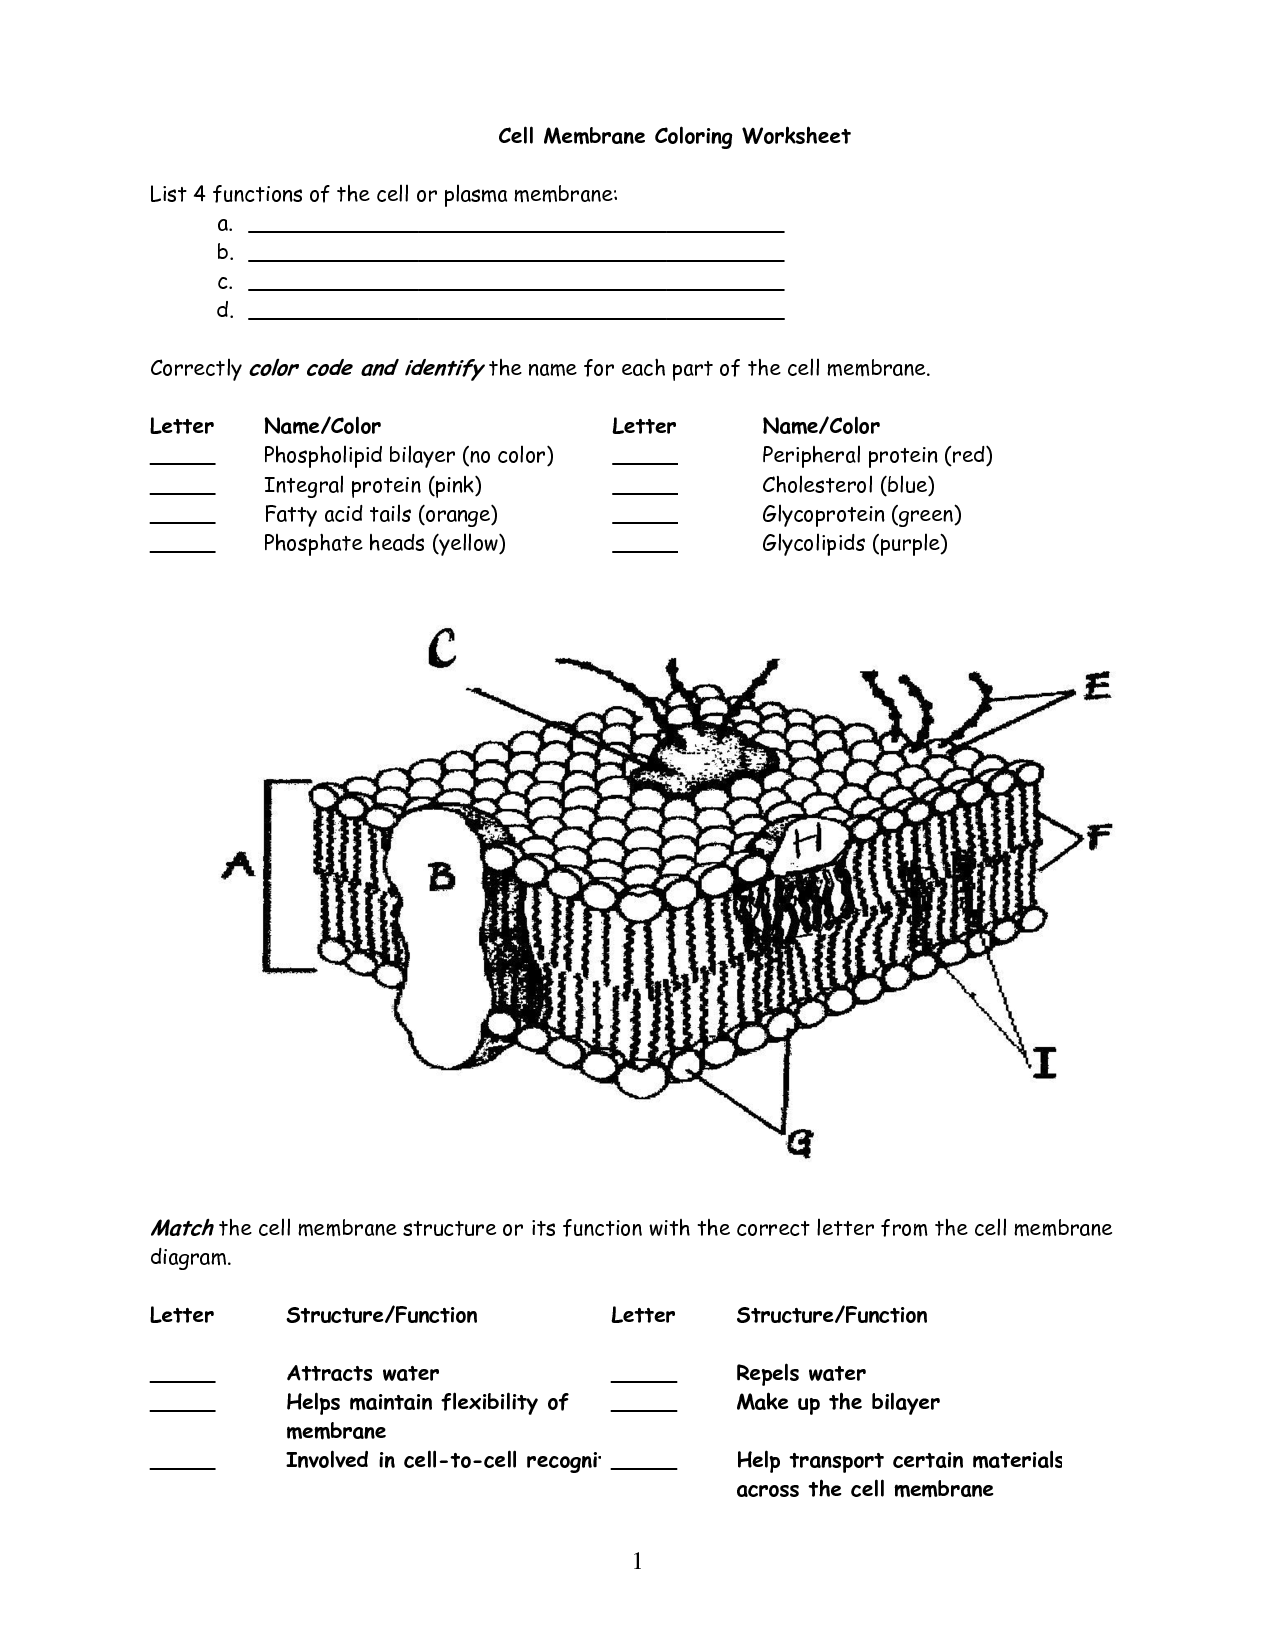 Cell Membrane Worksheet Answer Key The Best Worksheets Image